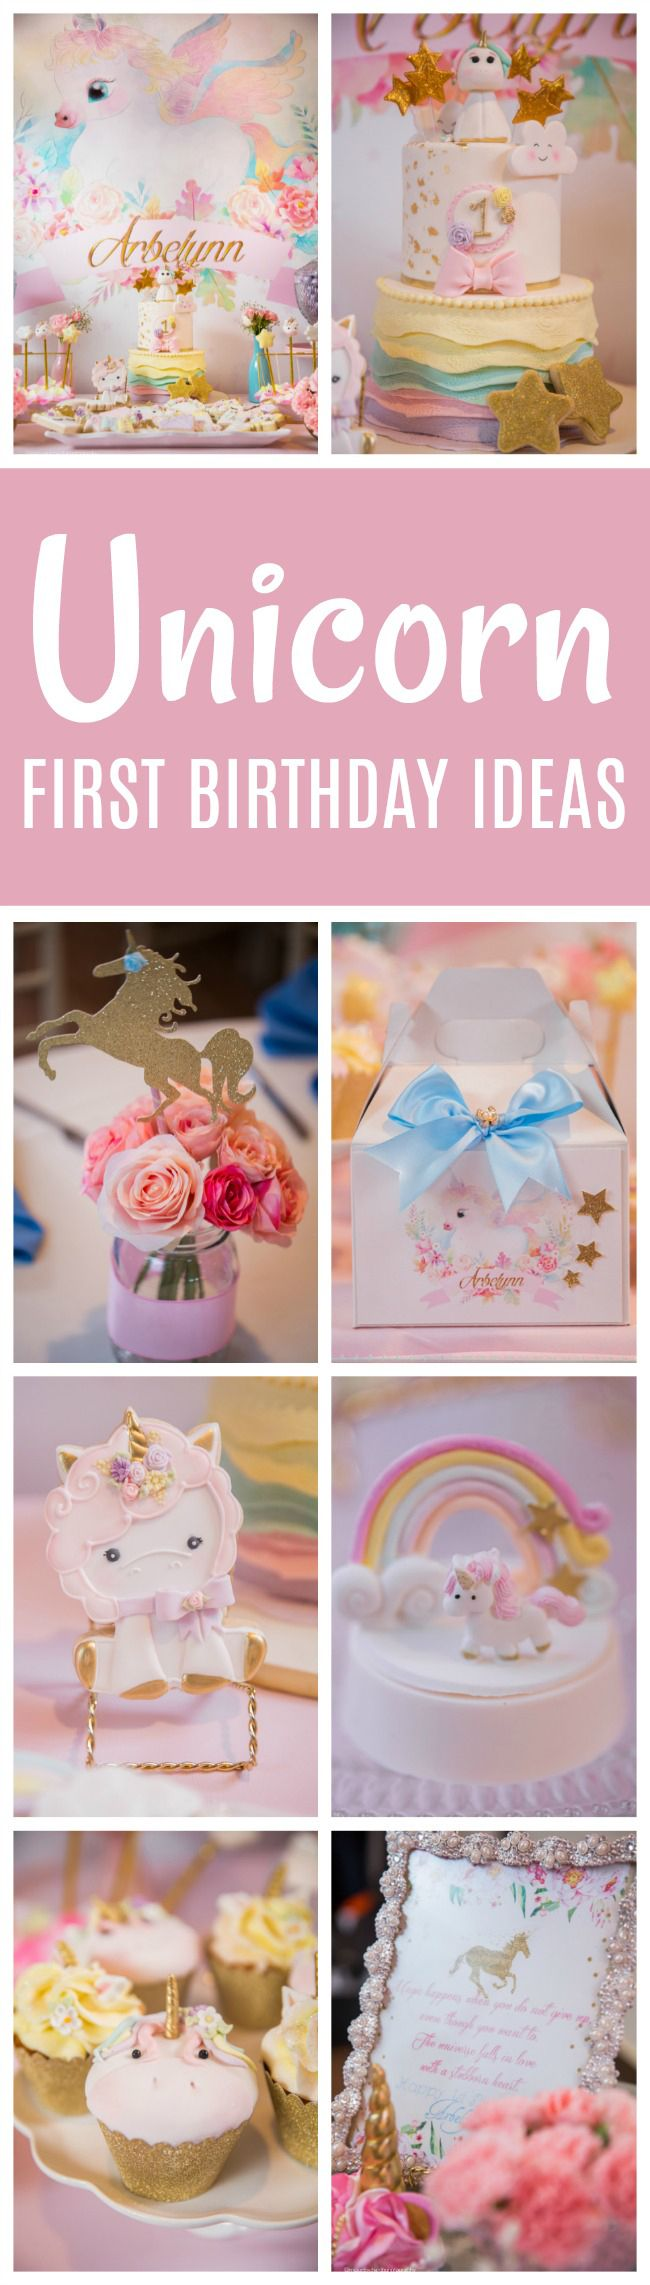 wording ideas forst birthday party invitation%0A Baby Unicorn Themed First Birthday Party